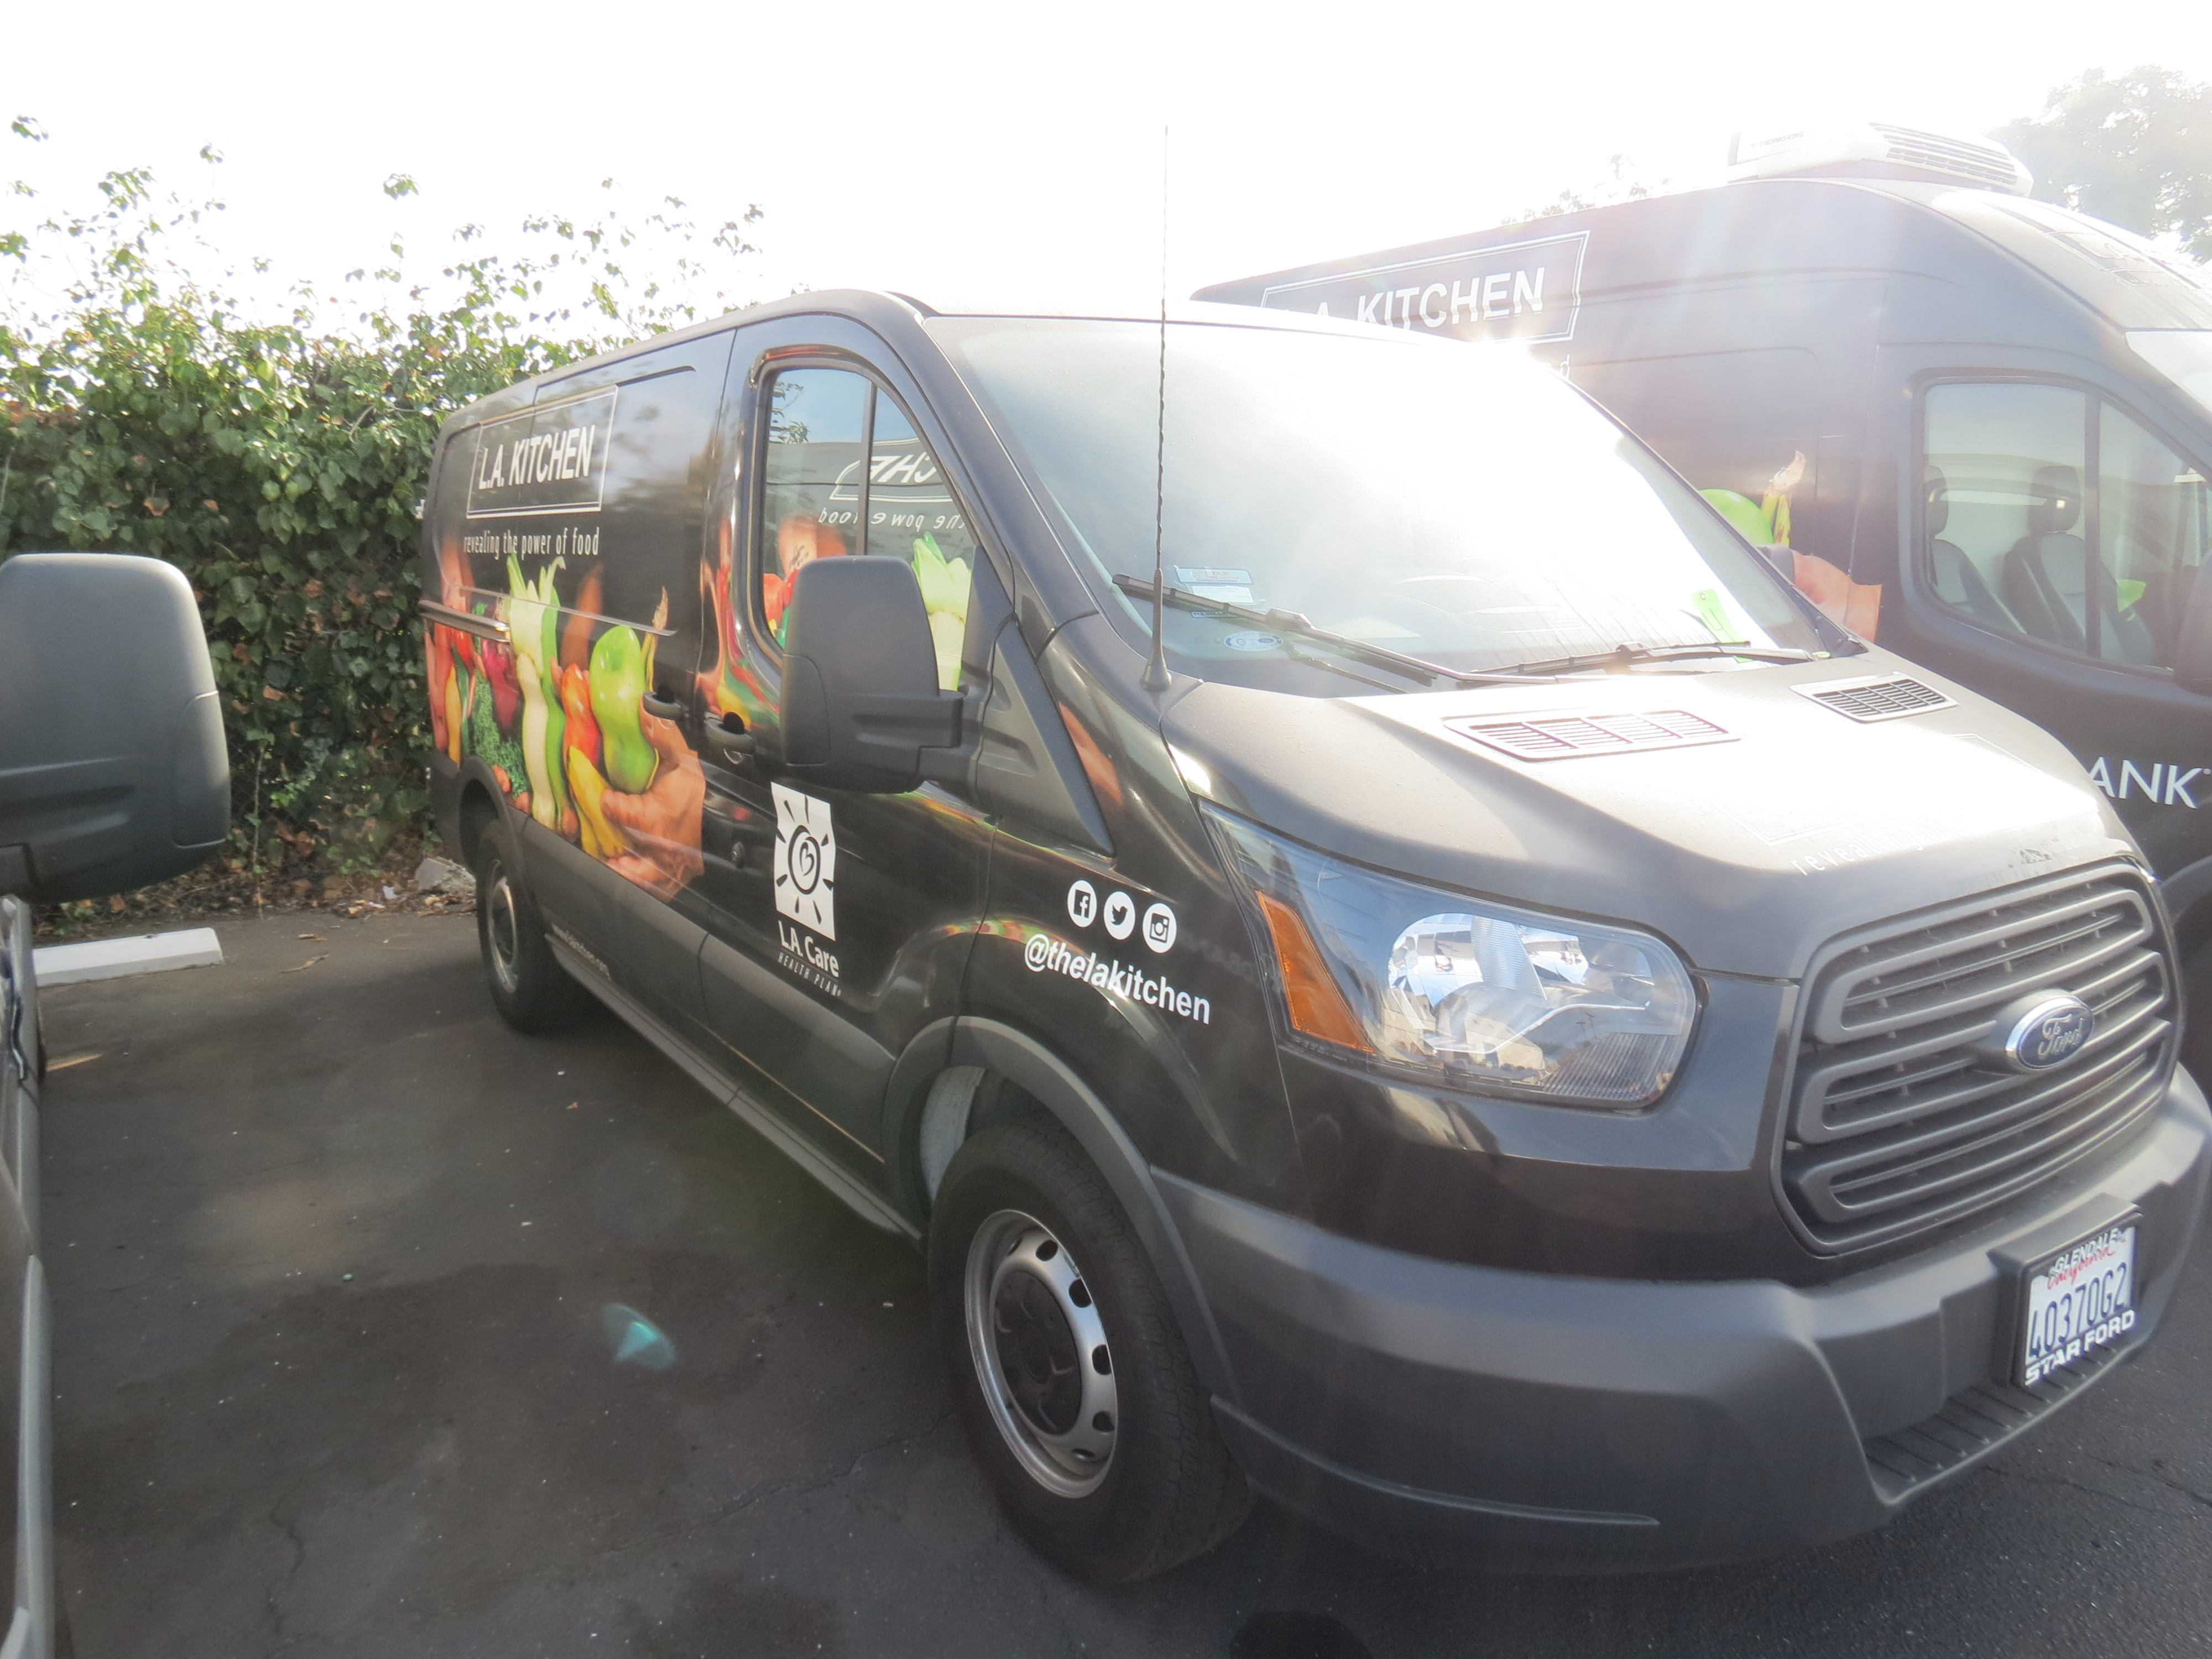 Lot 4 - 2017, FORD TRANSIT 150 PASSENGER/CARGO VAN, LOW ROOF, SLIDING DOOR, CUSTOM WRAP, MILES 1,433, VIN: